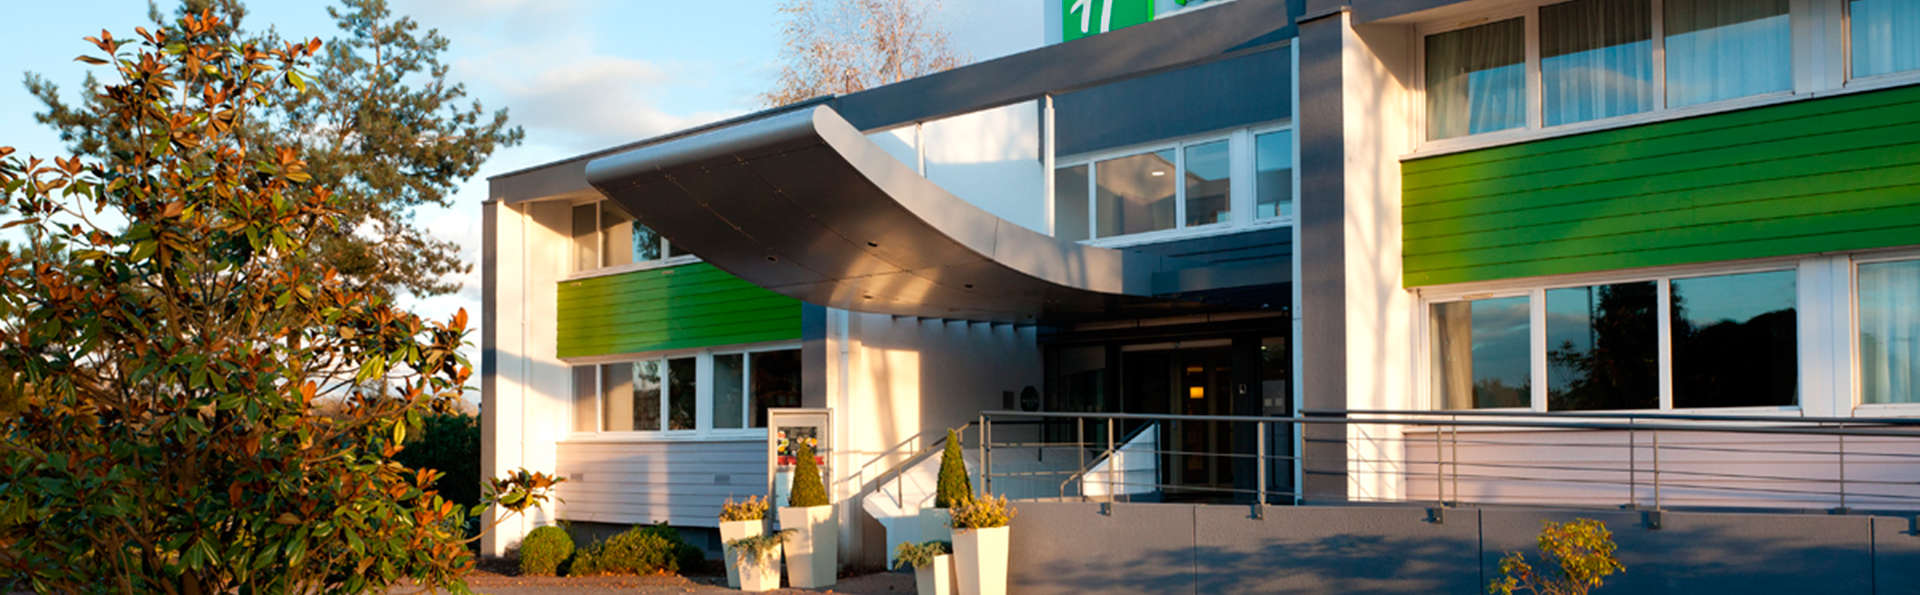 Holiday Inn Lille Ouest Englos - EDIT_front1.jpg